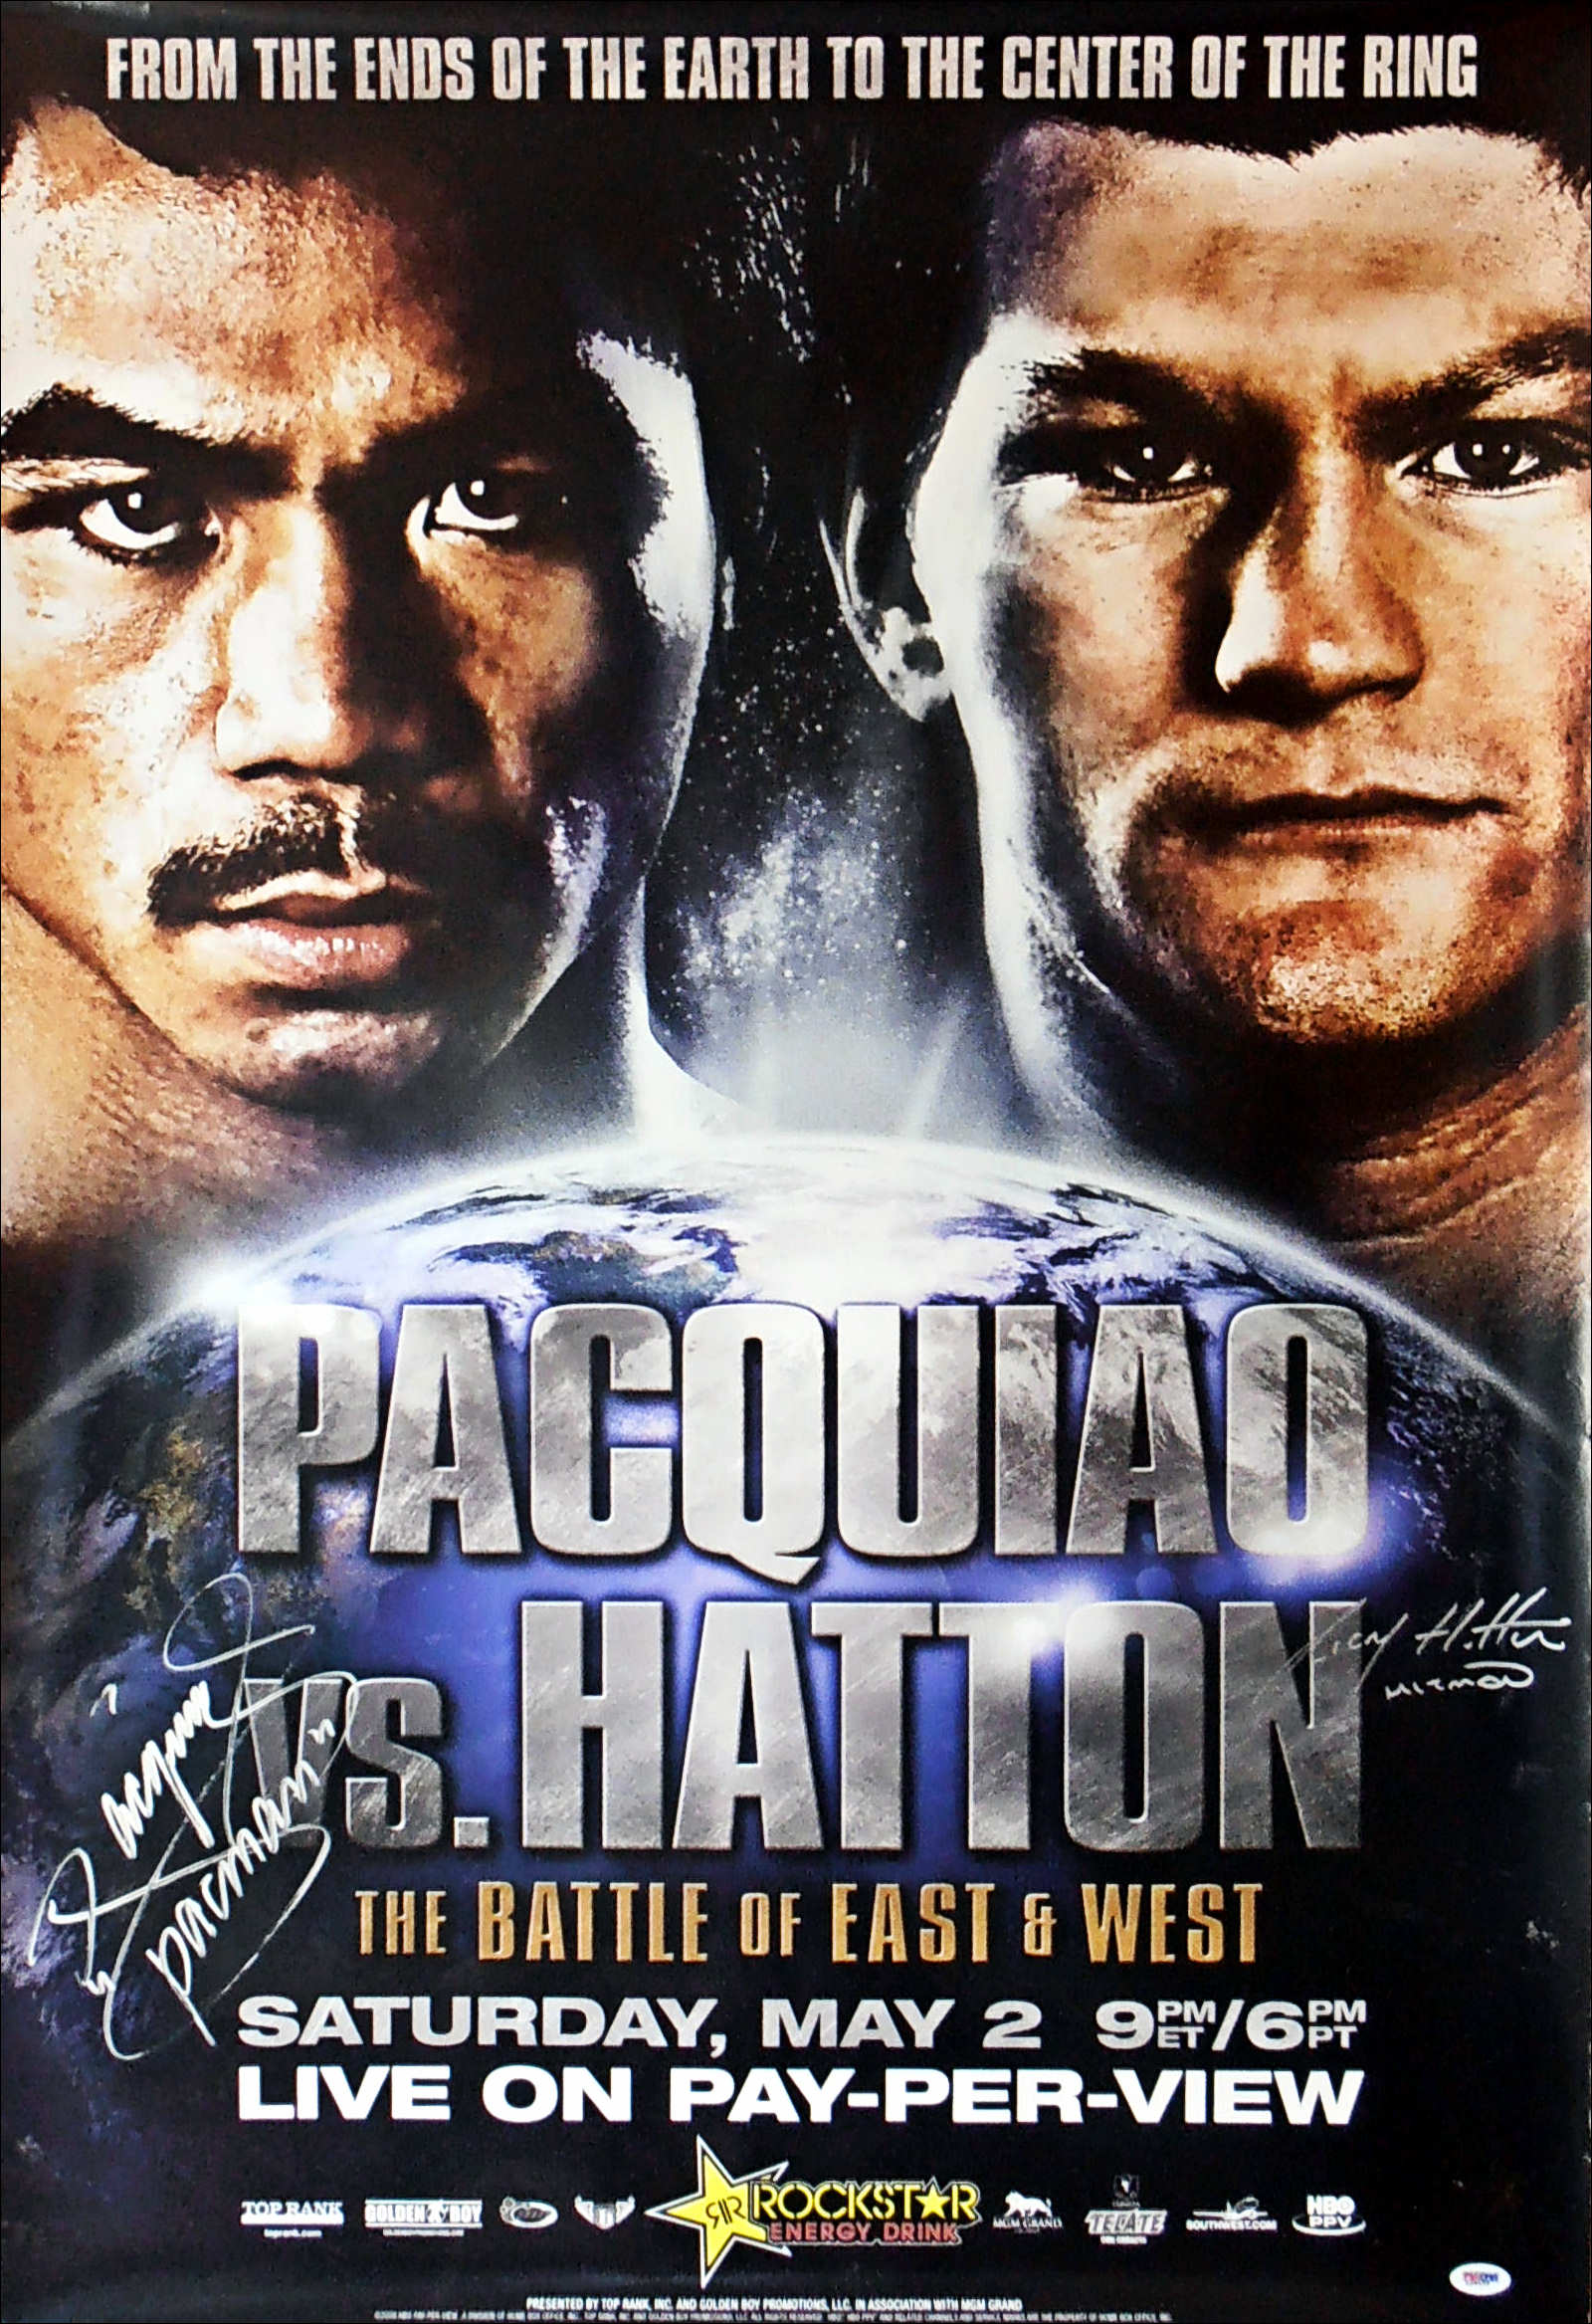 Manny Pacquiao vs. Ricky Hatton